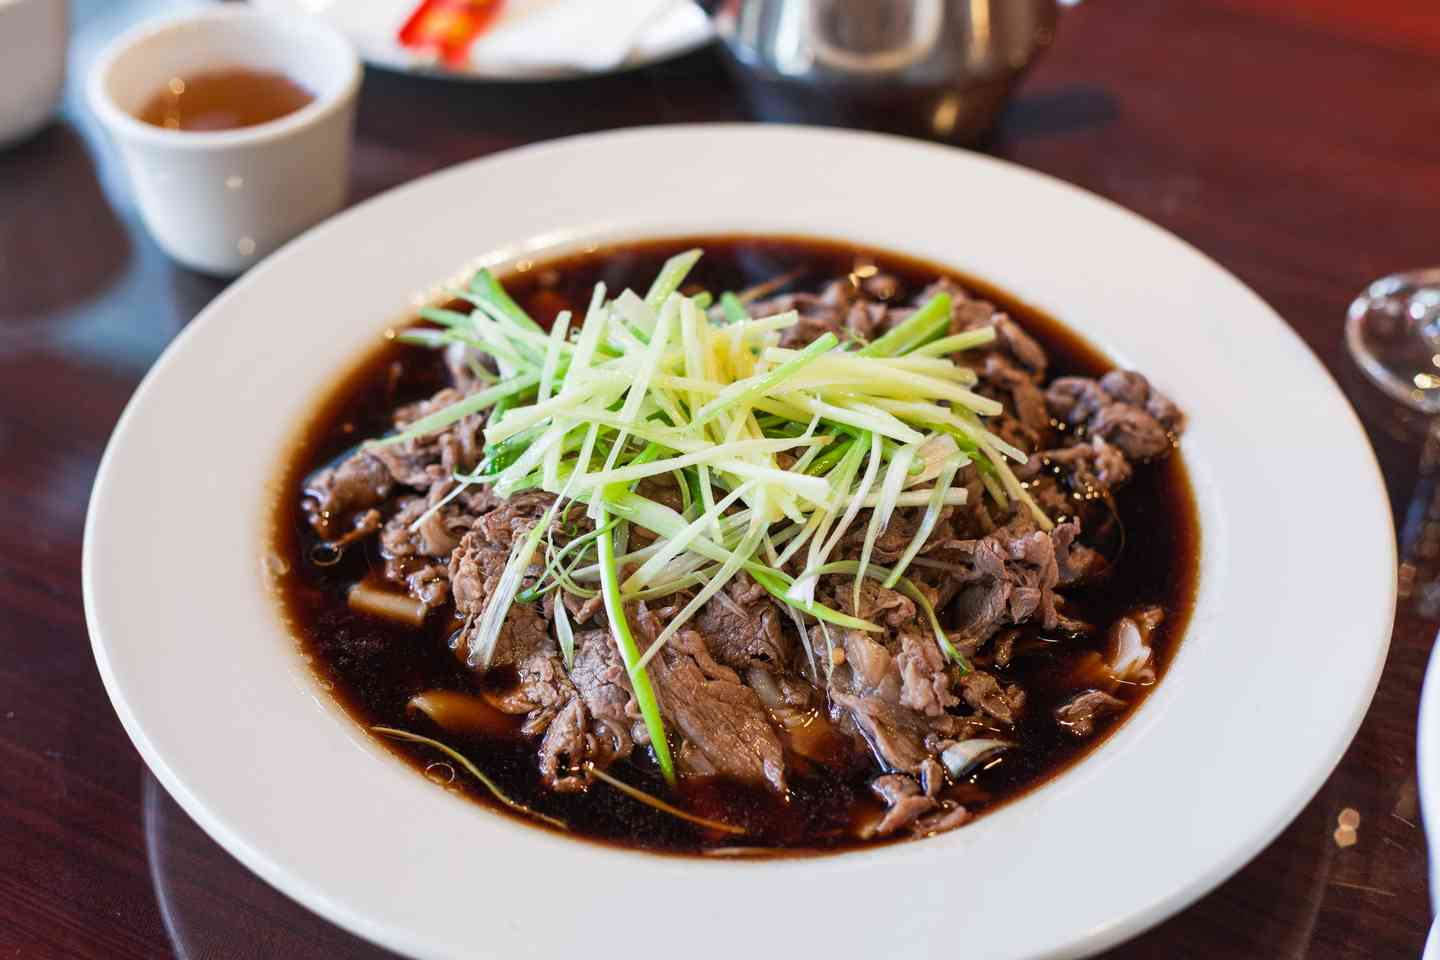 Braised Beef in Supreme Sauce